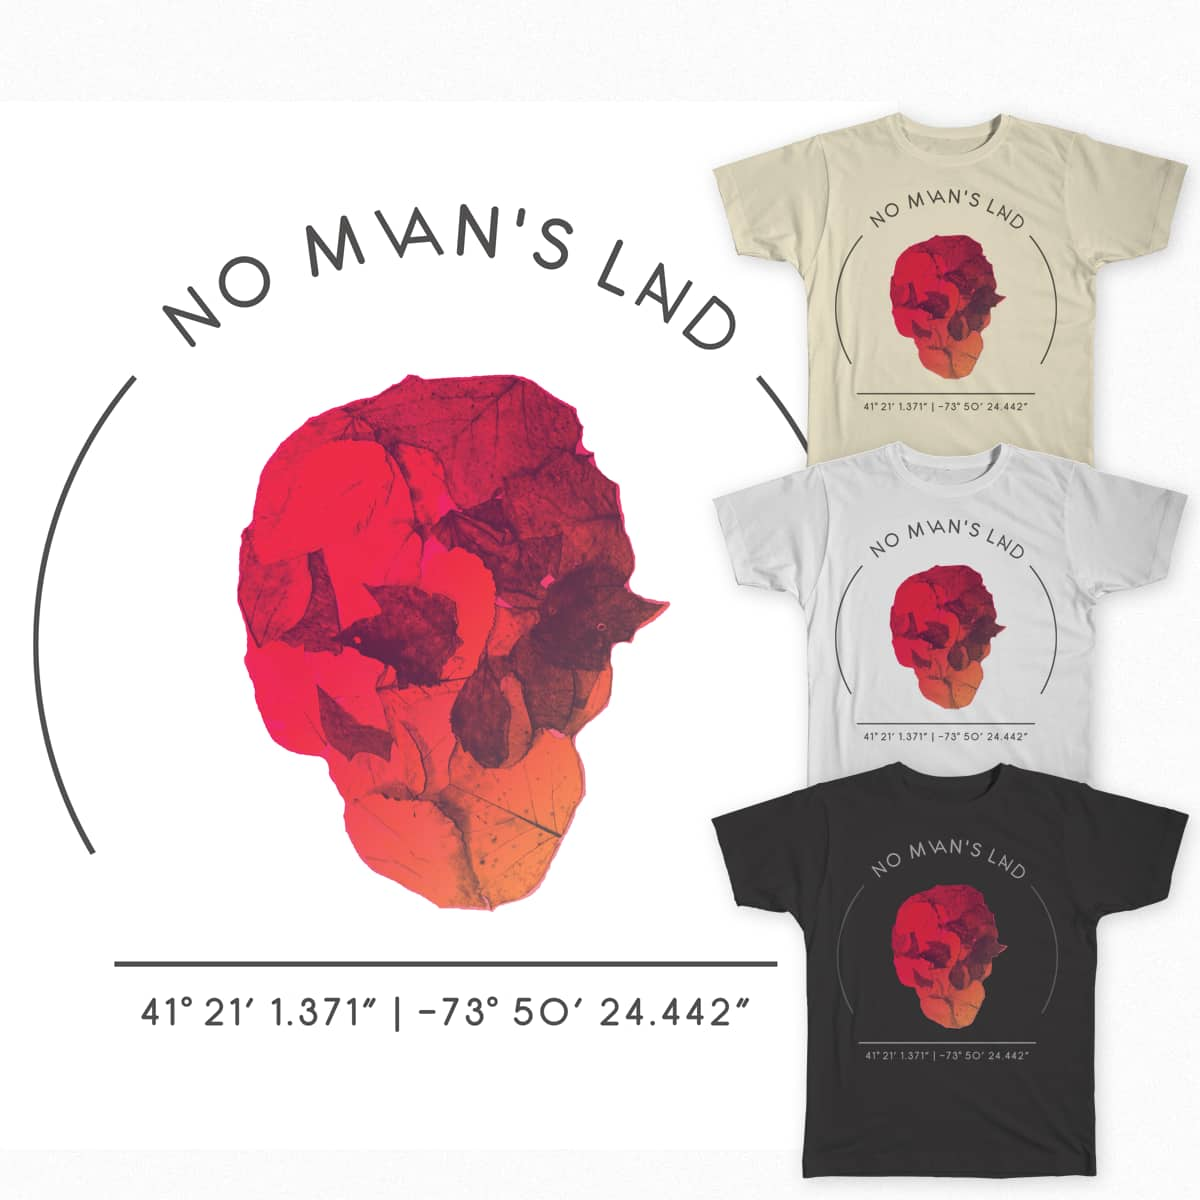 No Man's Land by HawkandCrow on Threadless